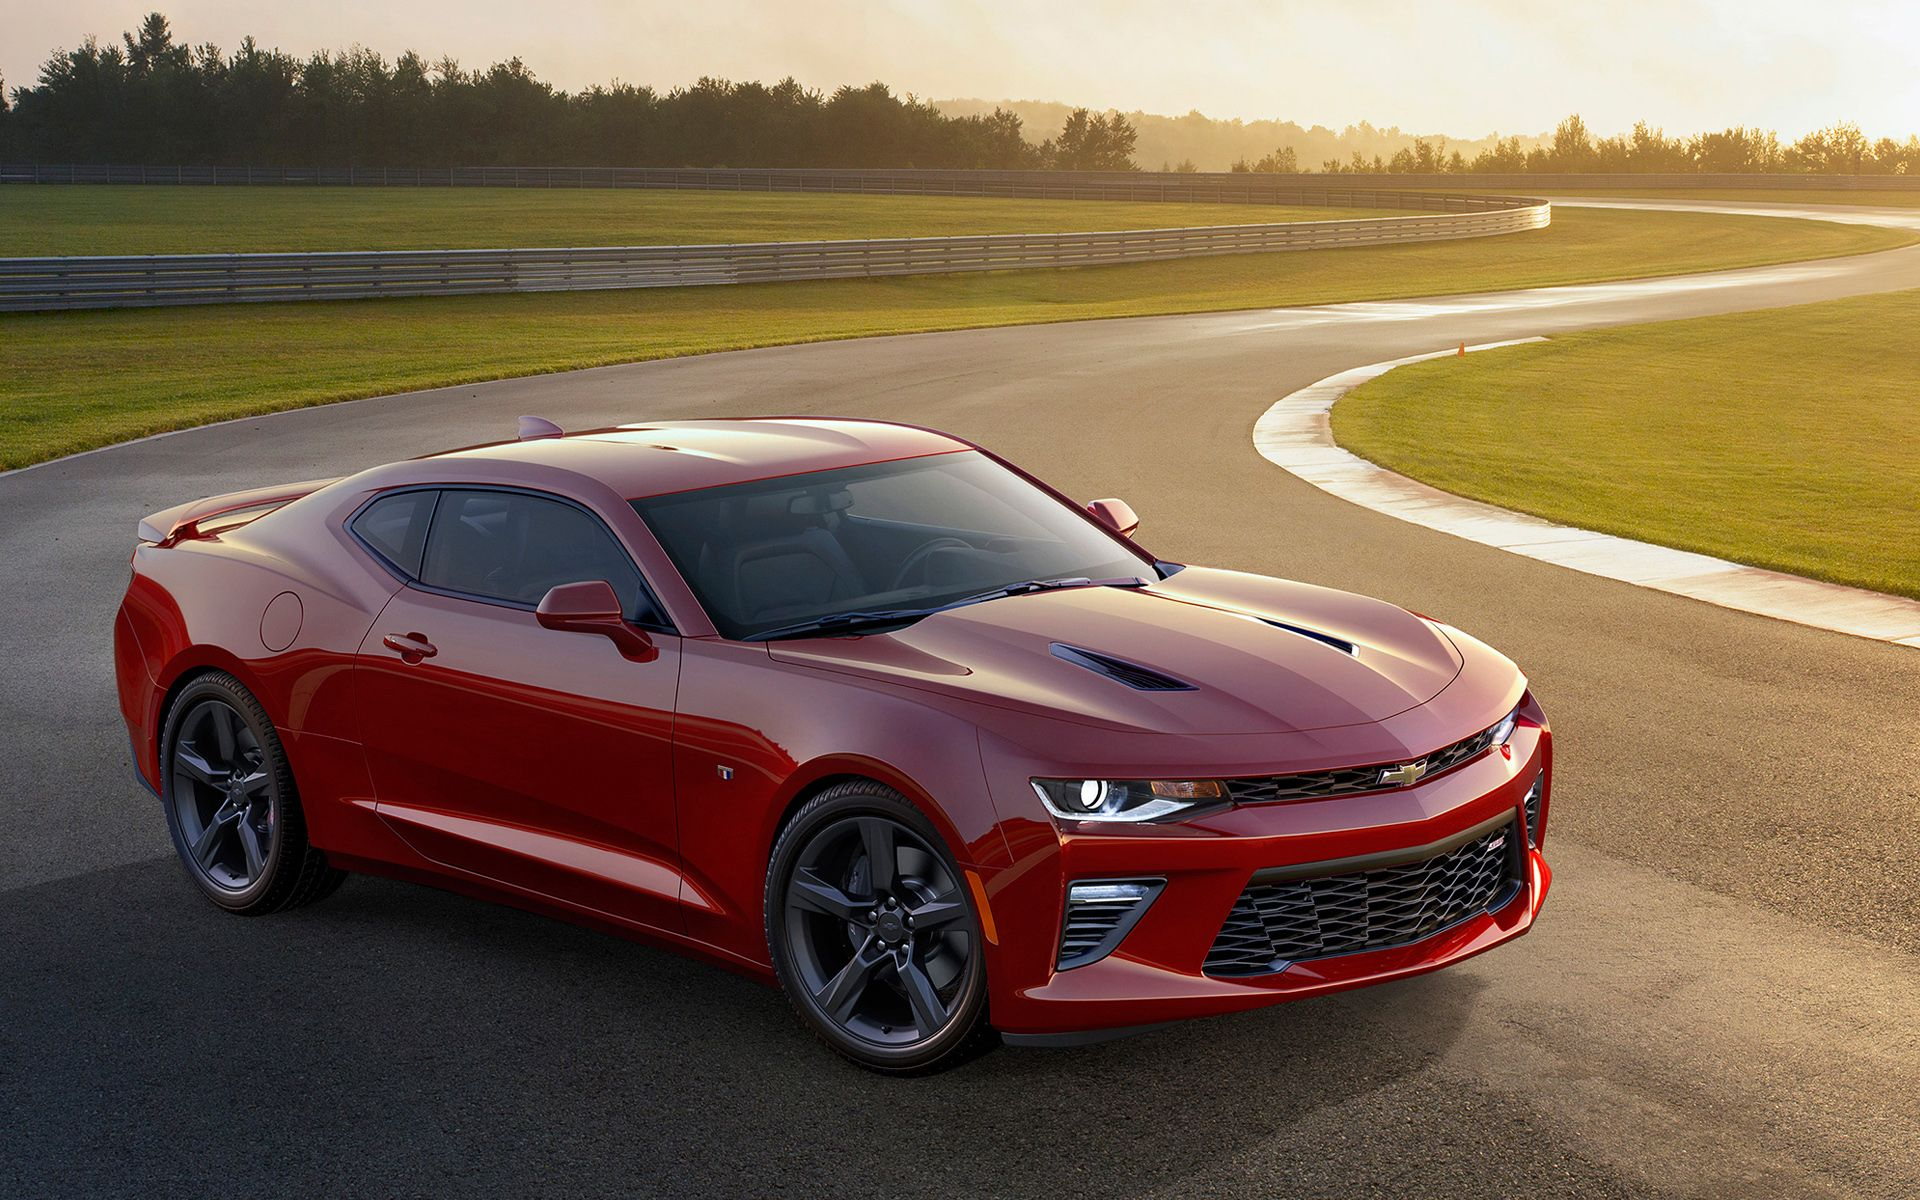 2016 Chevrolet Camaro Car HD Wallpaper